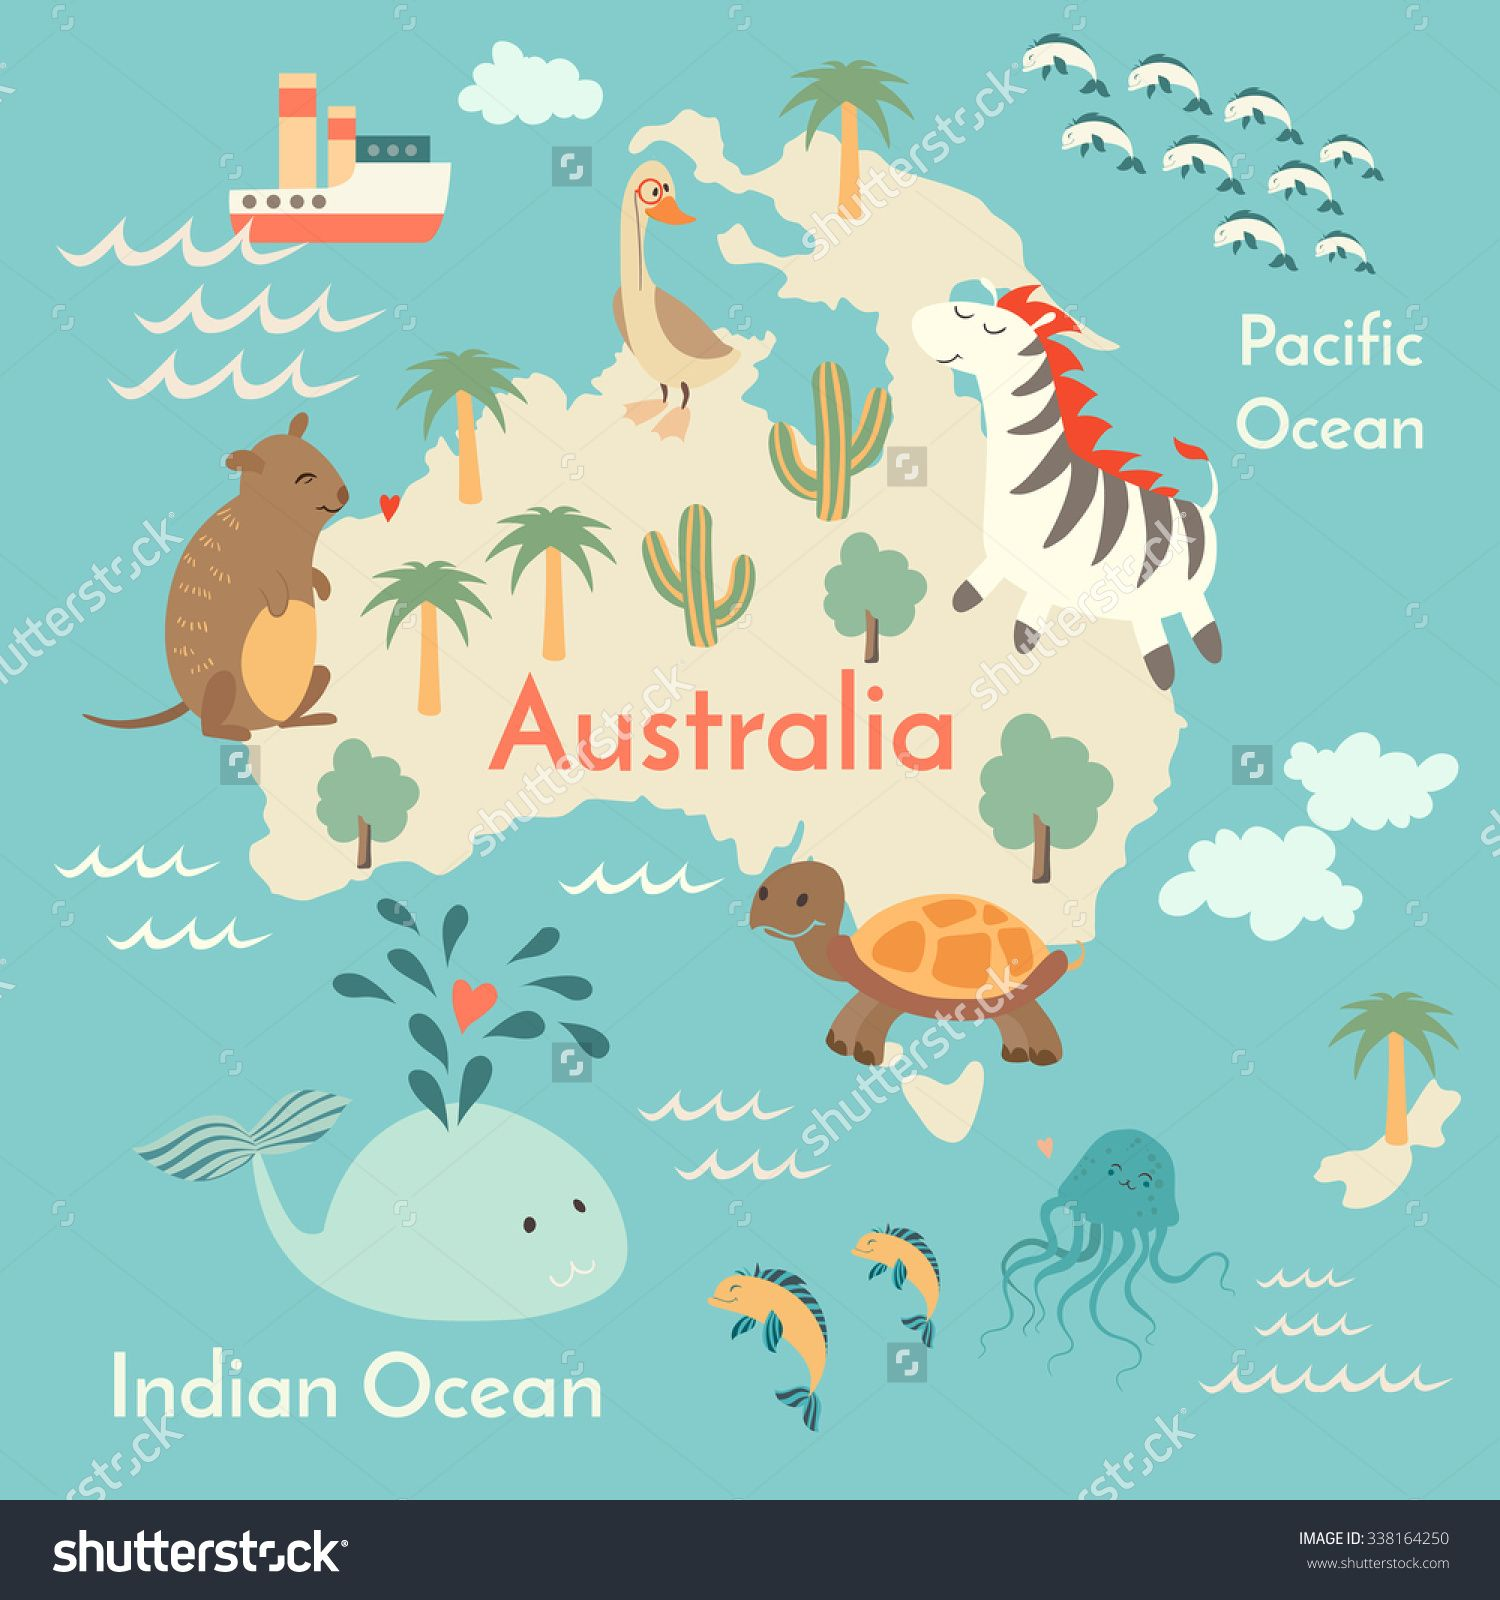 Animals World Map AustraliaAustralia Map For ChildrenKids - Australian map of the world